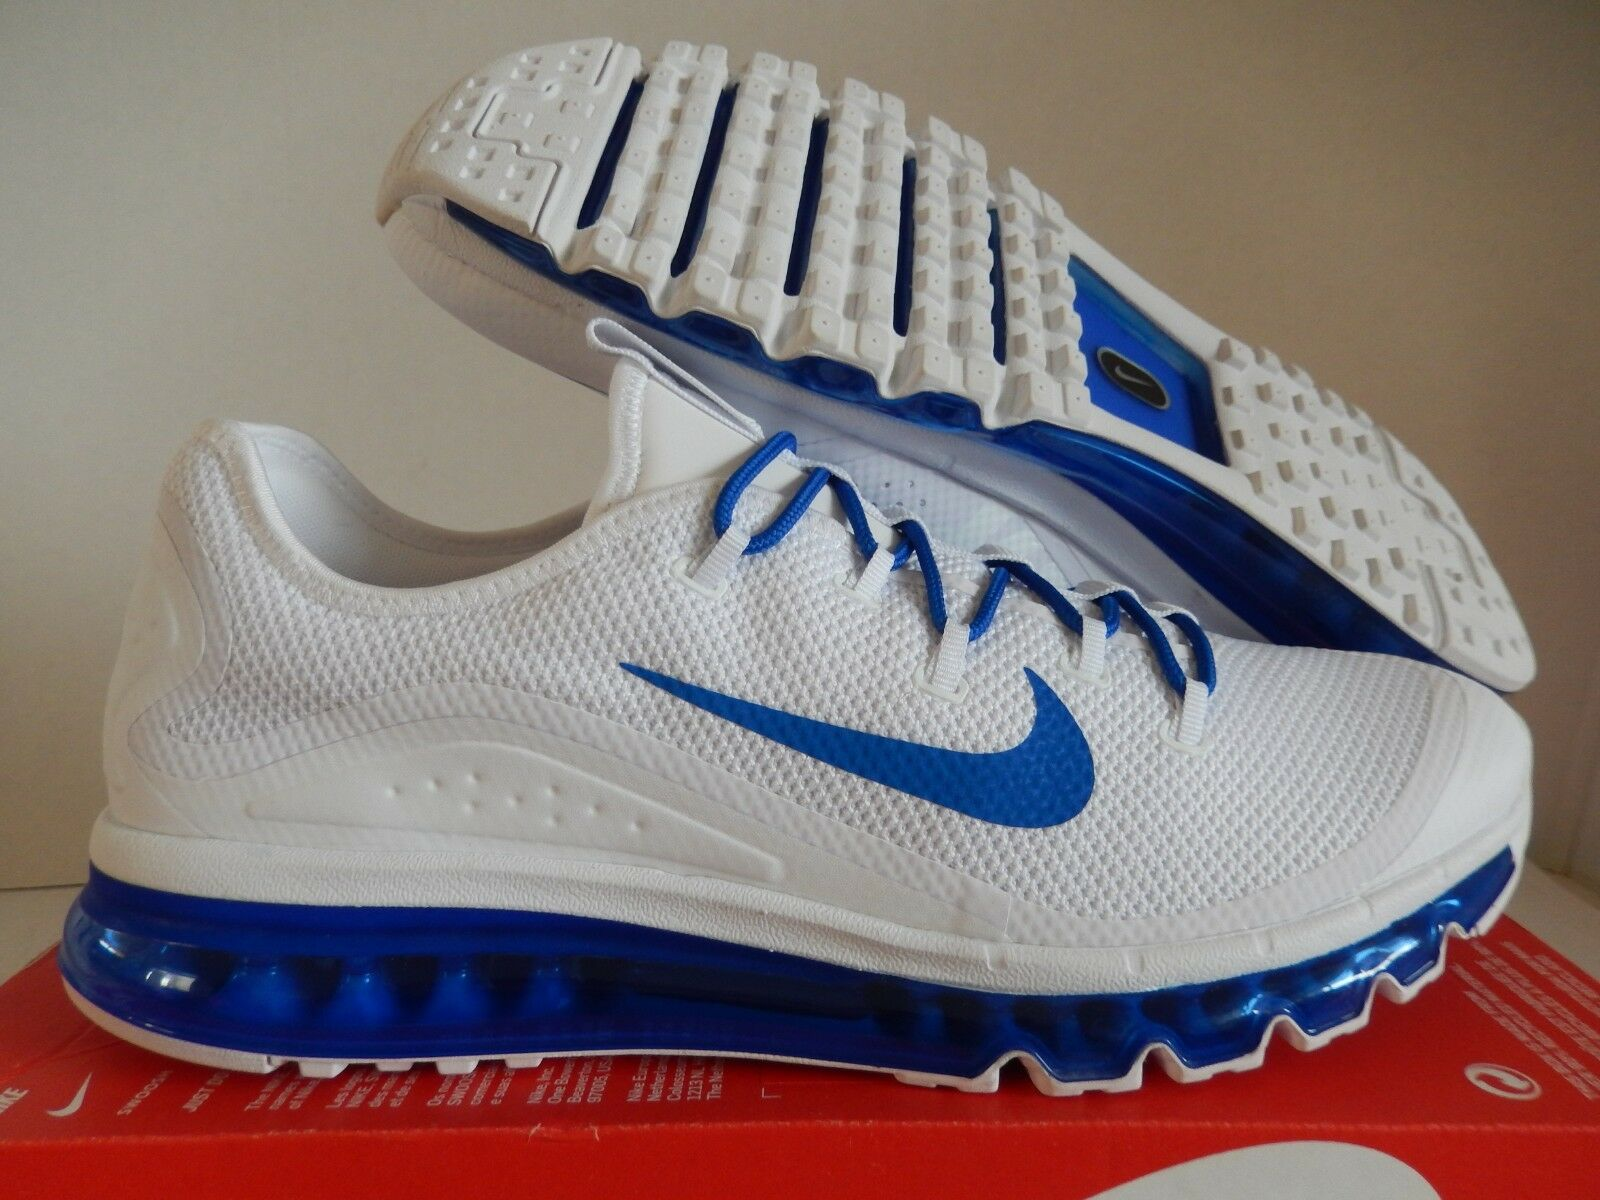 NIKE AIR MAX MORE 2009 2013 2017 WHITE-GAME ROYAL blueE SZ 10 [898013-101]